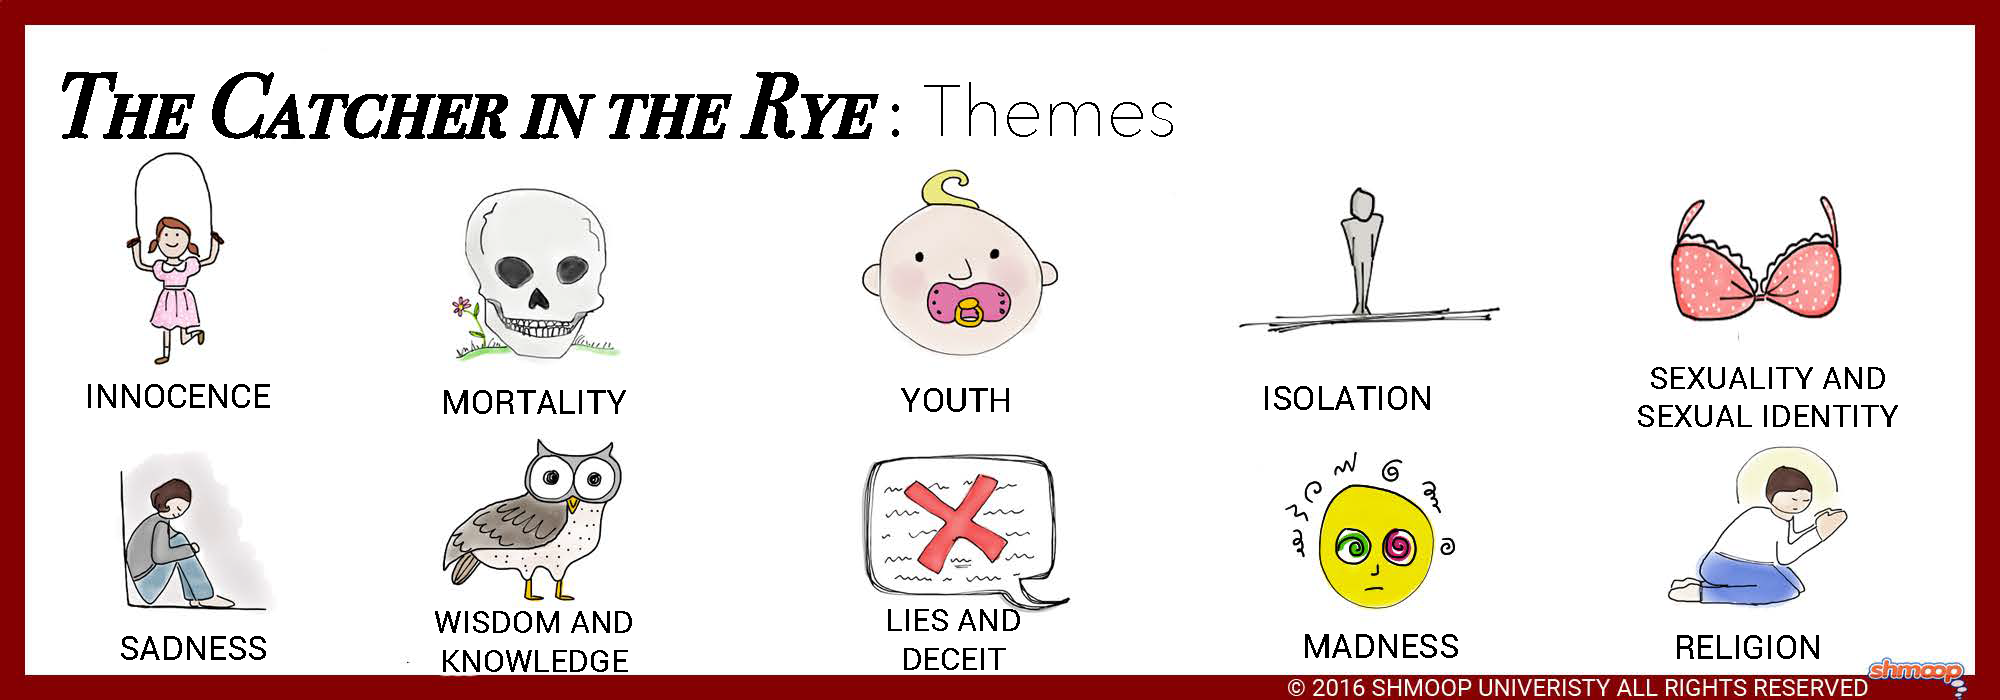 the catcher in the rye charts